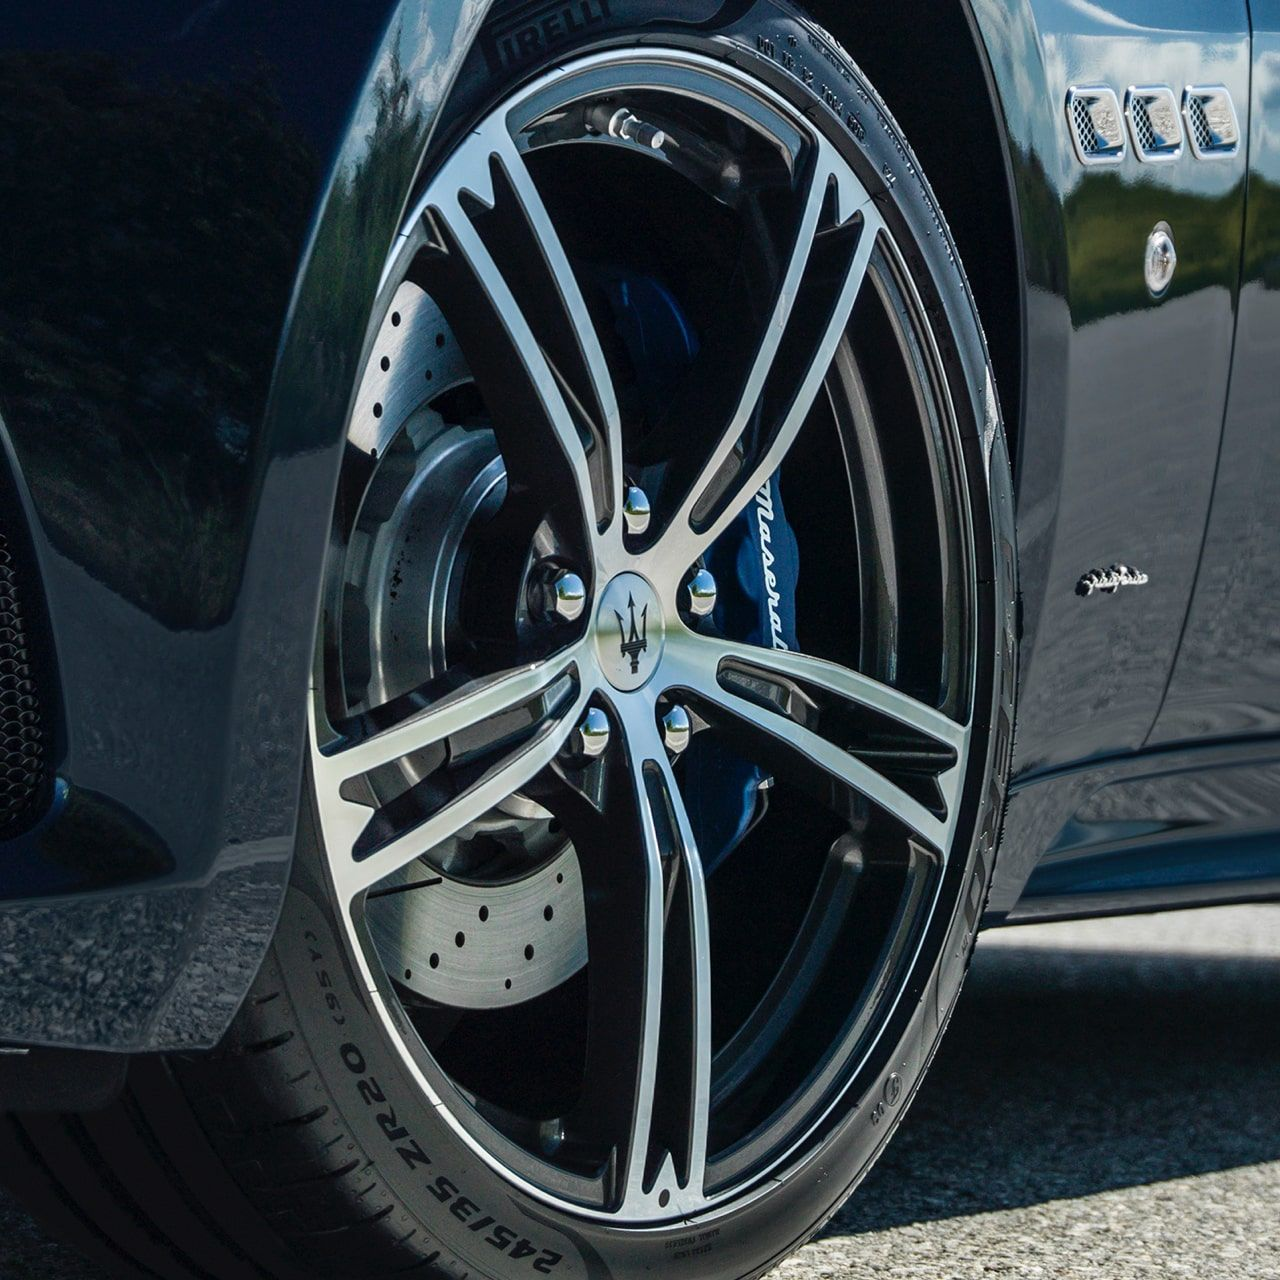 Maserati GranCabrio tyres and rims